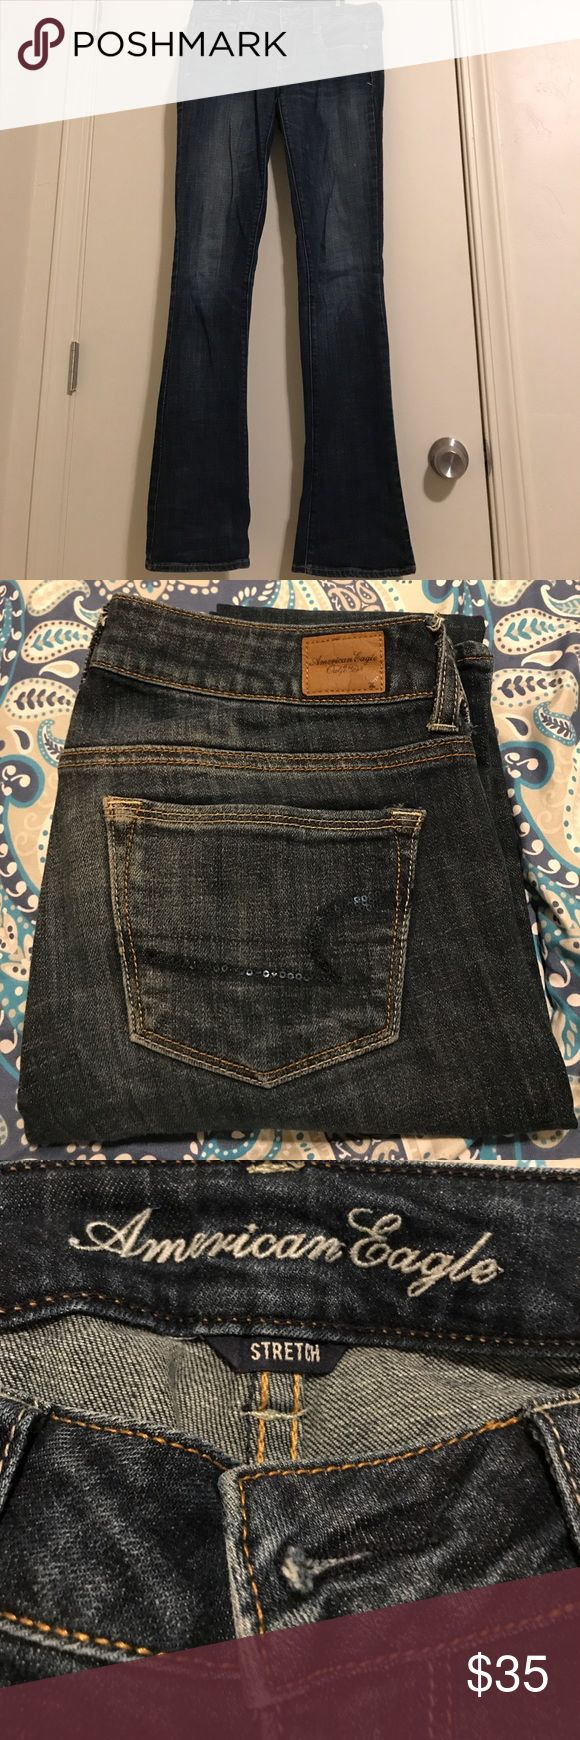 American Eagle Jeans Hello there, Thanks for stopping by :)  I am attending college and looking for a frugal way to adjust my closet! You bundle you save! All offers considered. Smoke free home. Feel free to ask questions and make offers, I have to posh app so I can communicate with you quickly!  Have a good day💕. American Eagle Outfitters Jeans Boyfriend